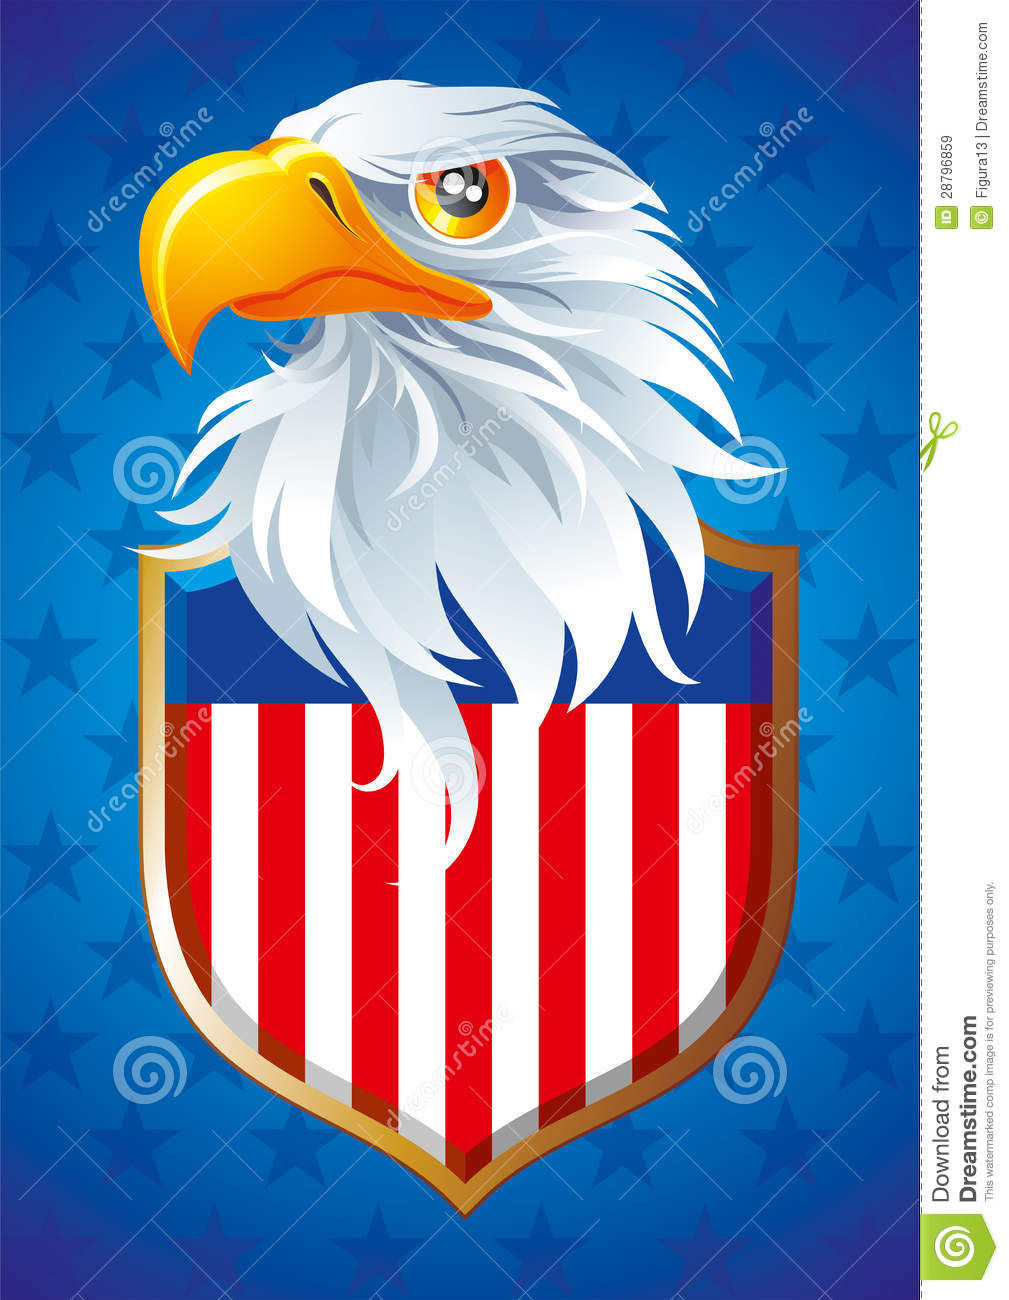 stars and stripes clipart free